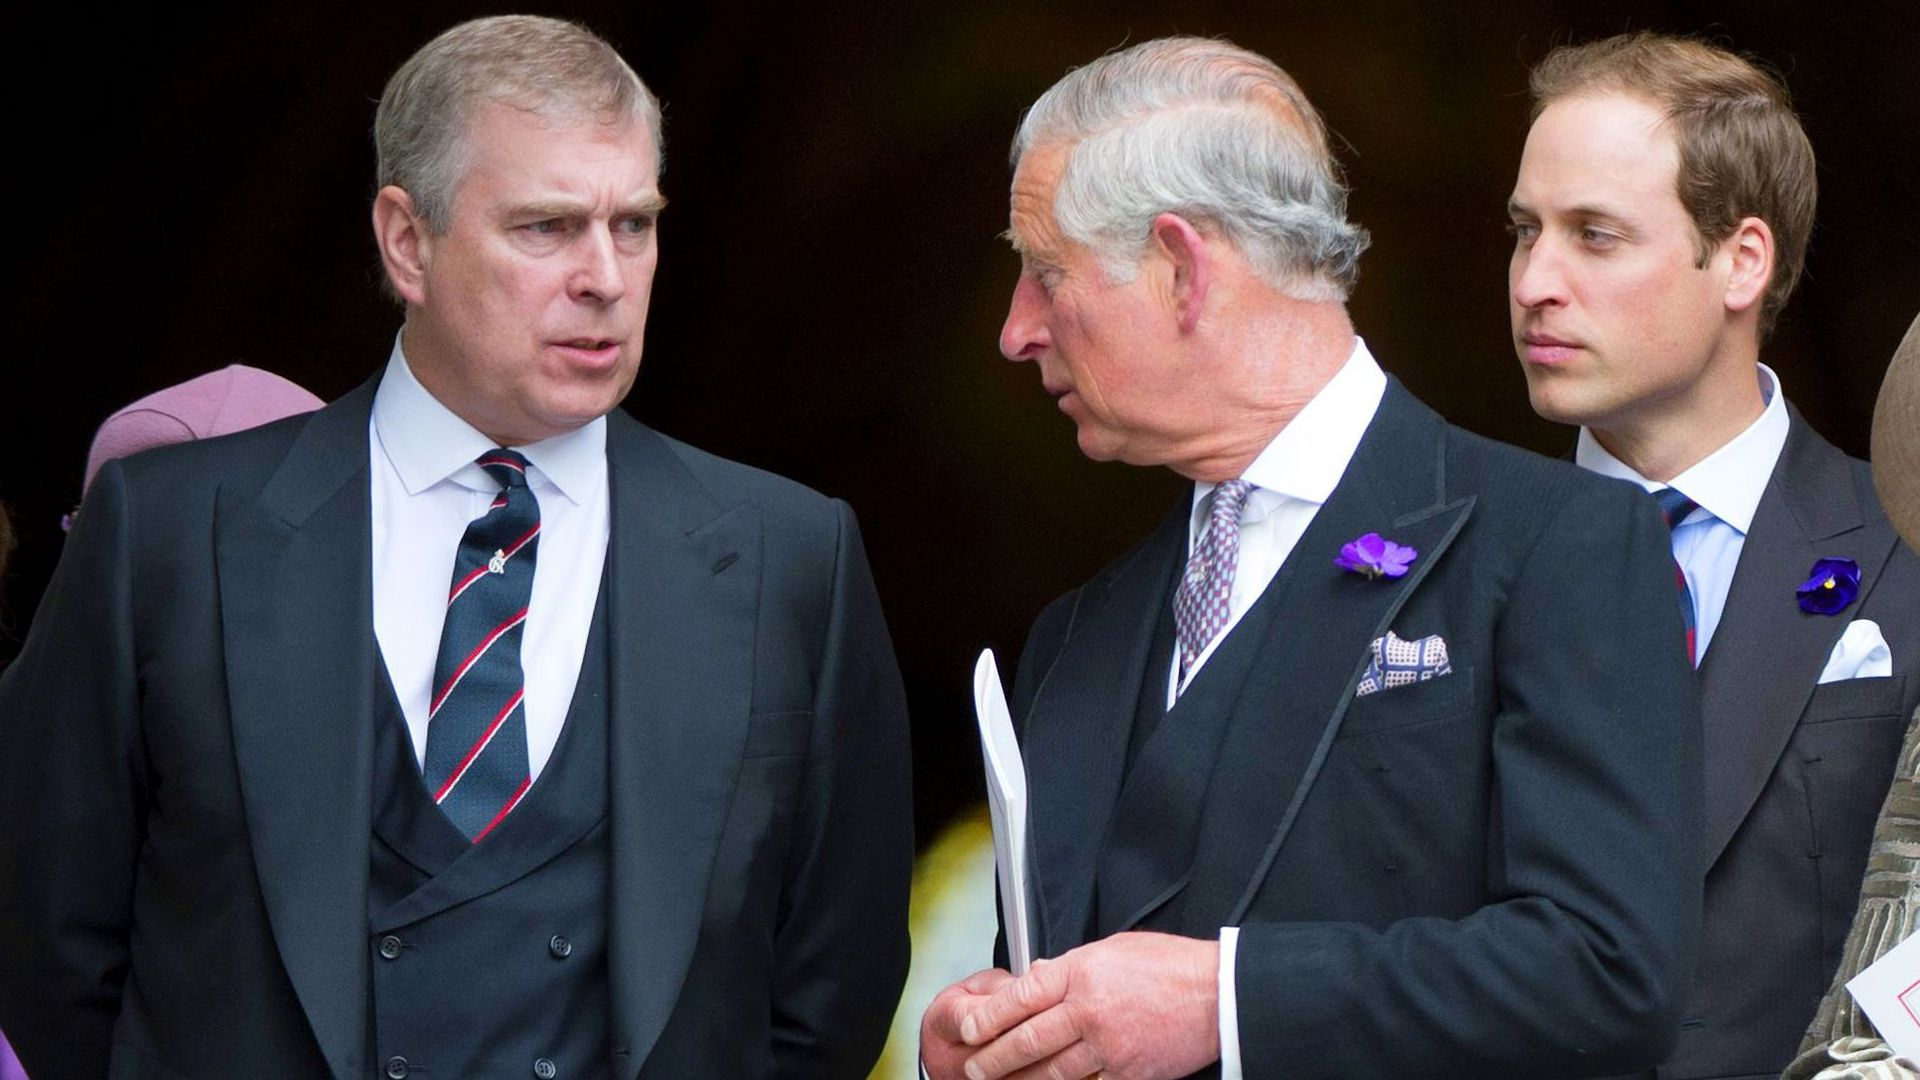 Mandatory Credit: Photo by Tim Rooke/Shutterstock (1732505di) Prince Andrew, Prince Charles, Prince William, Camilla Duchess of Cornwall, Catherine Duchess of Cambridge and Prince Harry The Queen's Diamond Jubilee, Service of Thanksgiving at St Pauls Cathedral, London, Britain - 05 Jun 2012